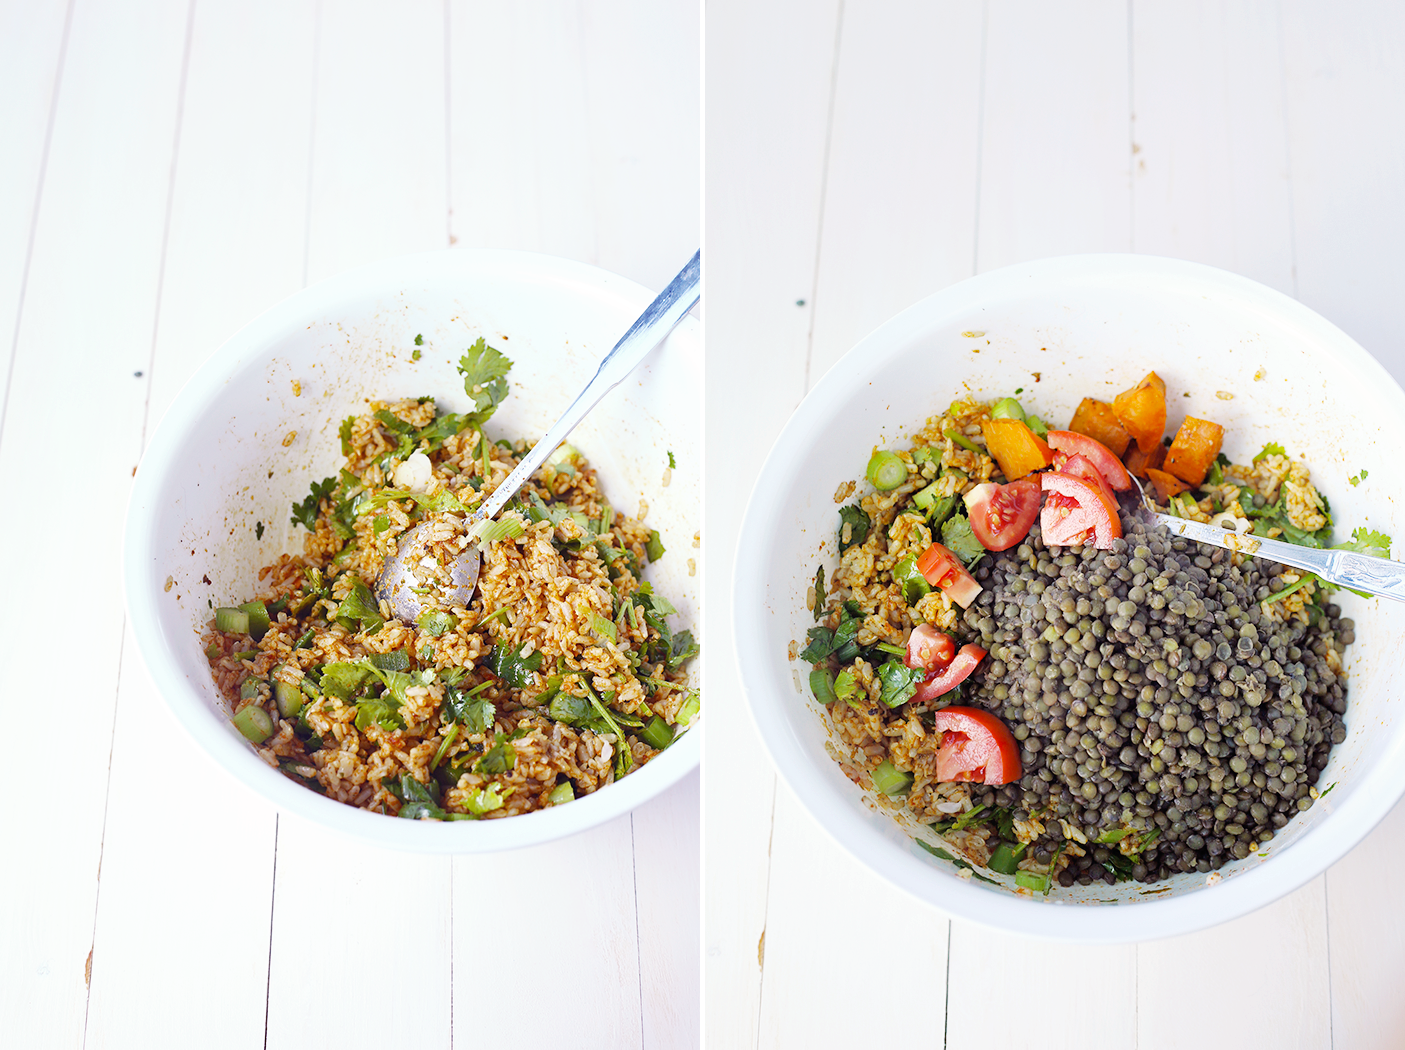 The tastiest Vegan Brown Rice Black Lentil Salad you'll ever try! #vegan #veganfood #salads #healthy #lentil